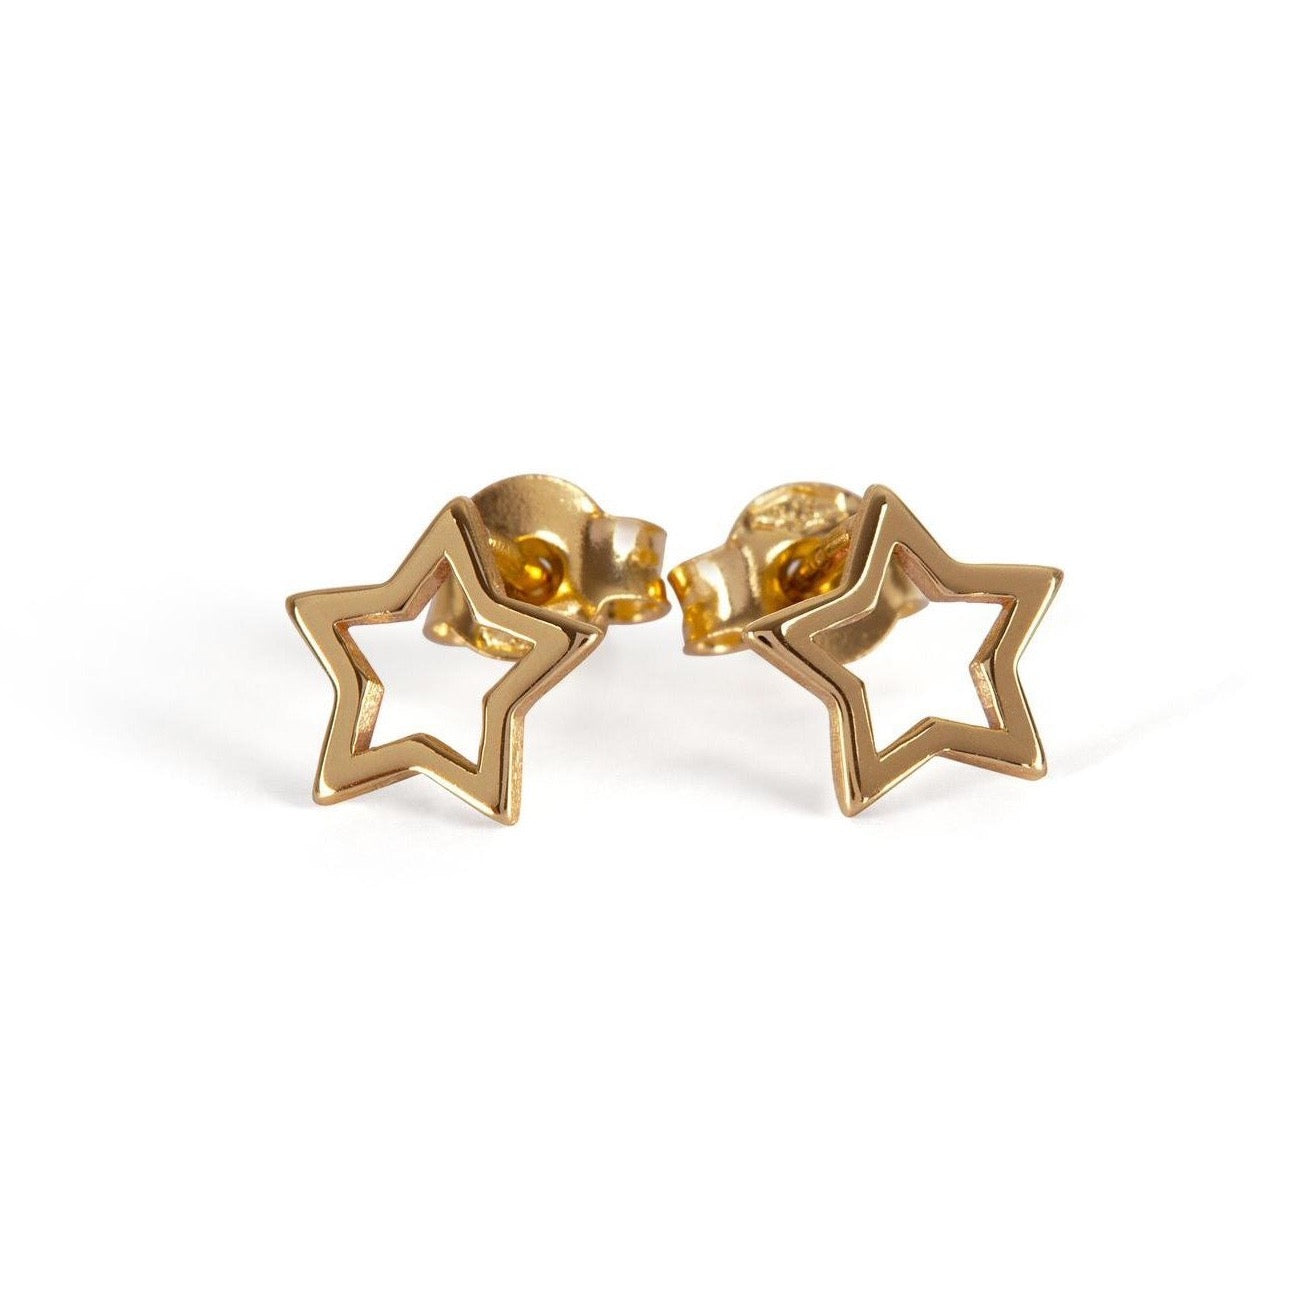 9kt Gold Open Star Stud Earrings